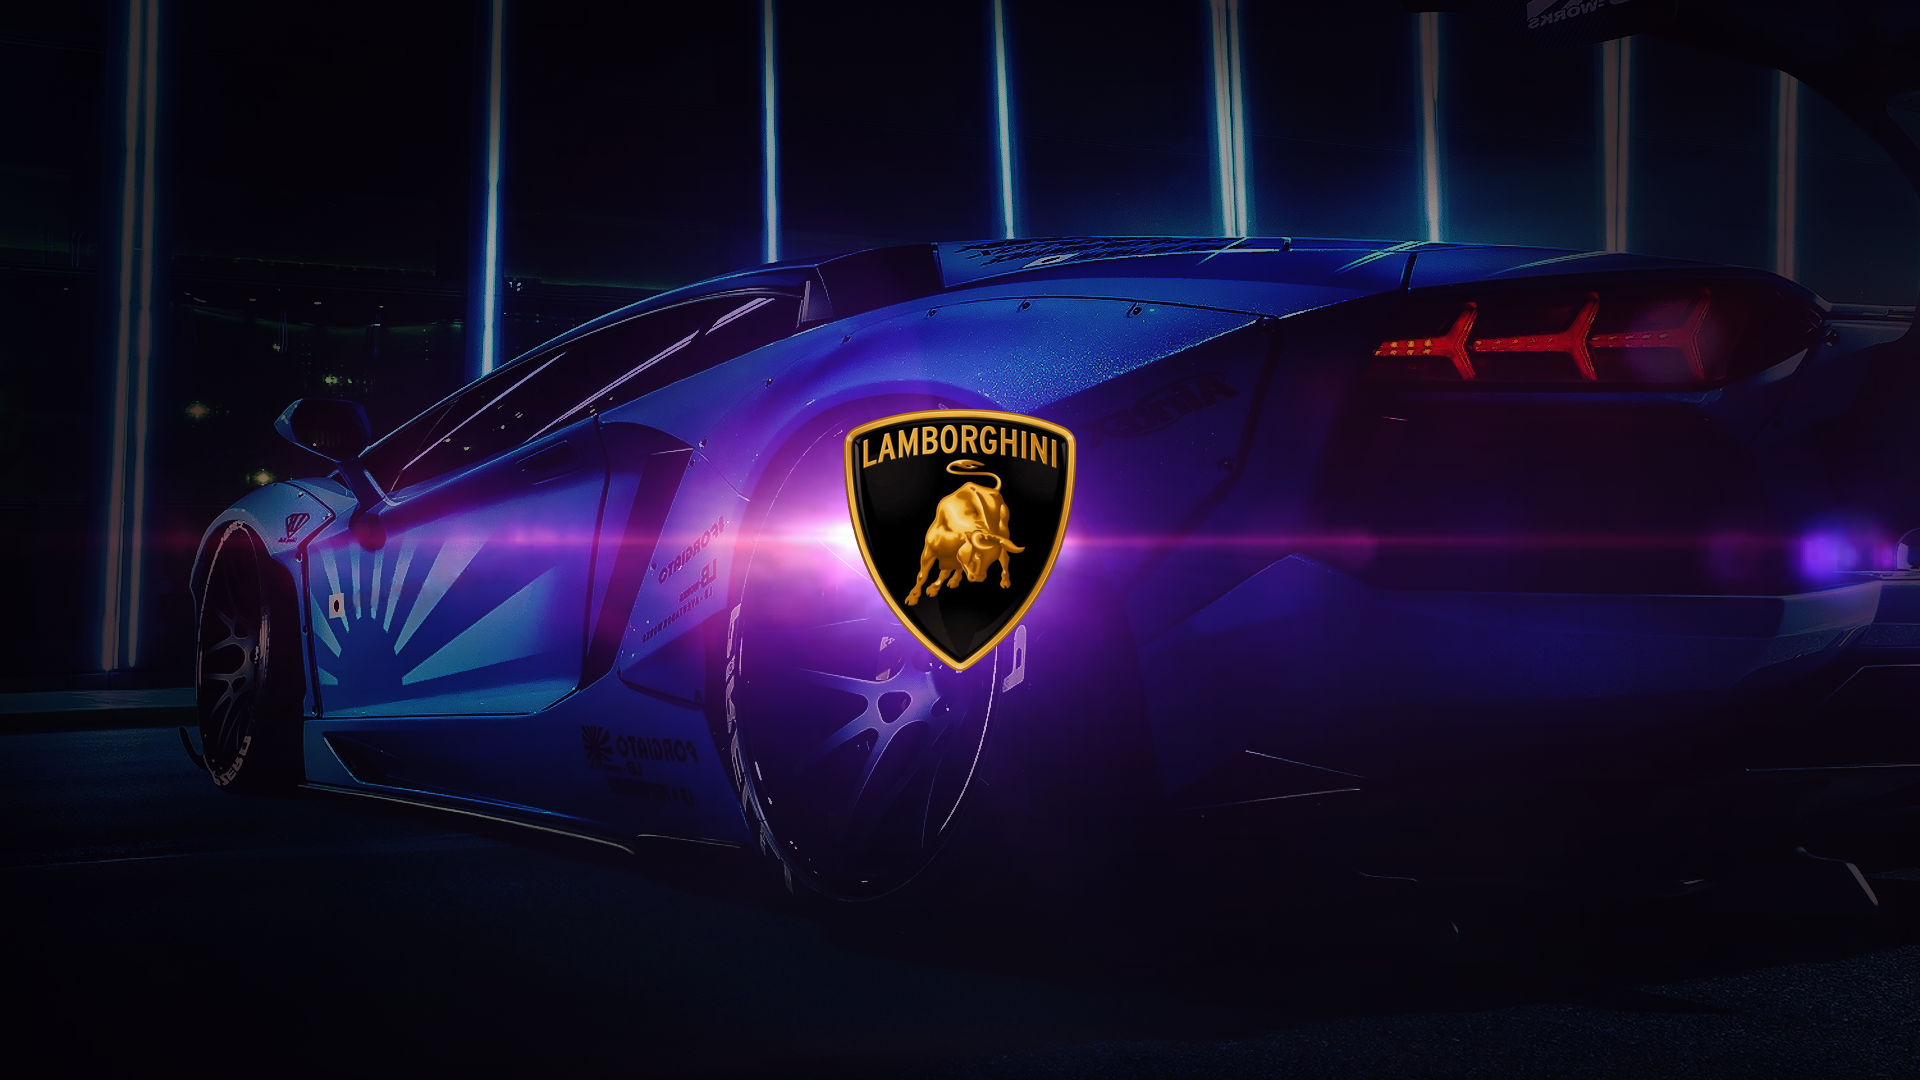 We did not find results for: Lamborghini Logo On Car Posted By Christopher Cunningham